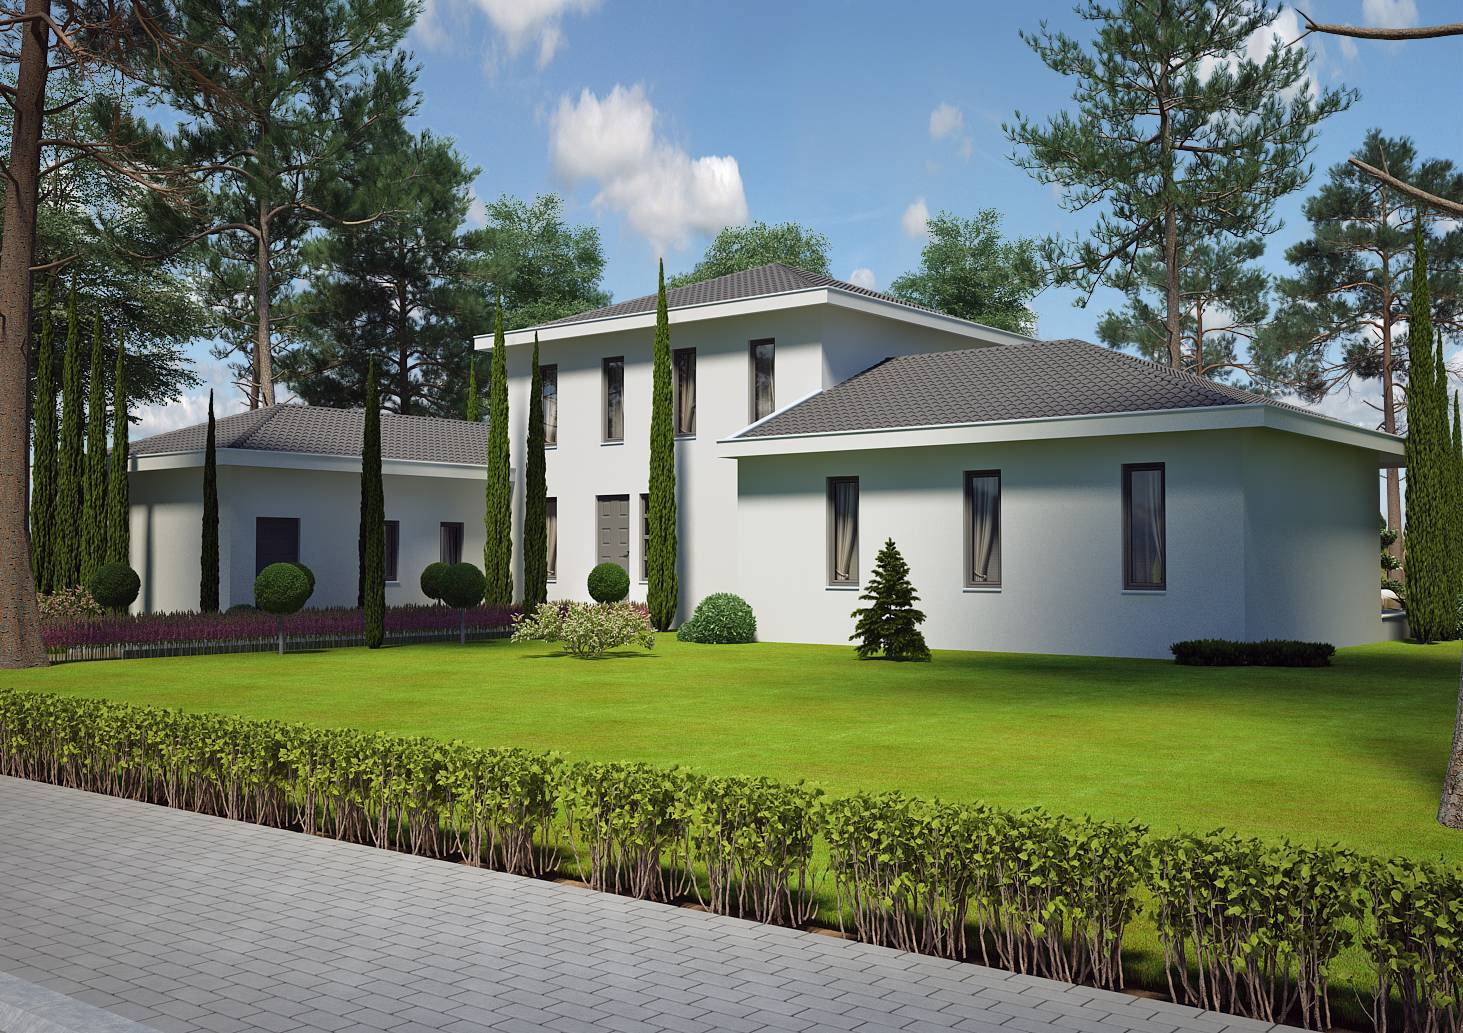 Villa contemporaine 150 m2 etage mod le pinede salon for Modele de construction de maison moderne